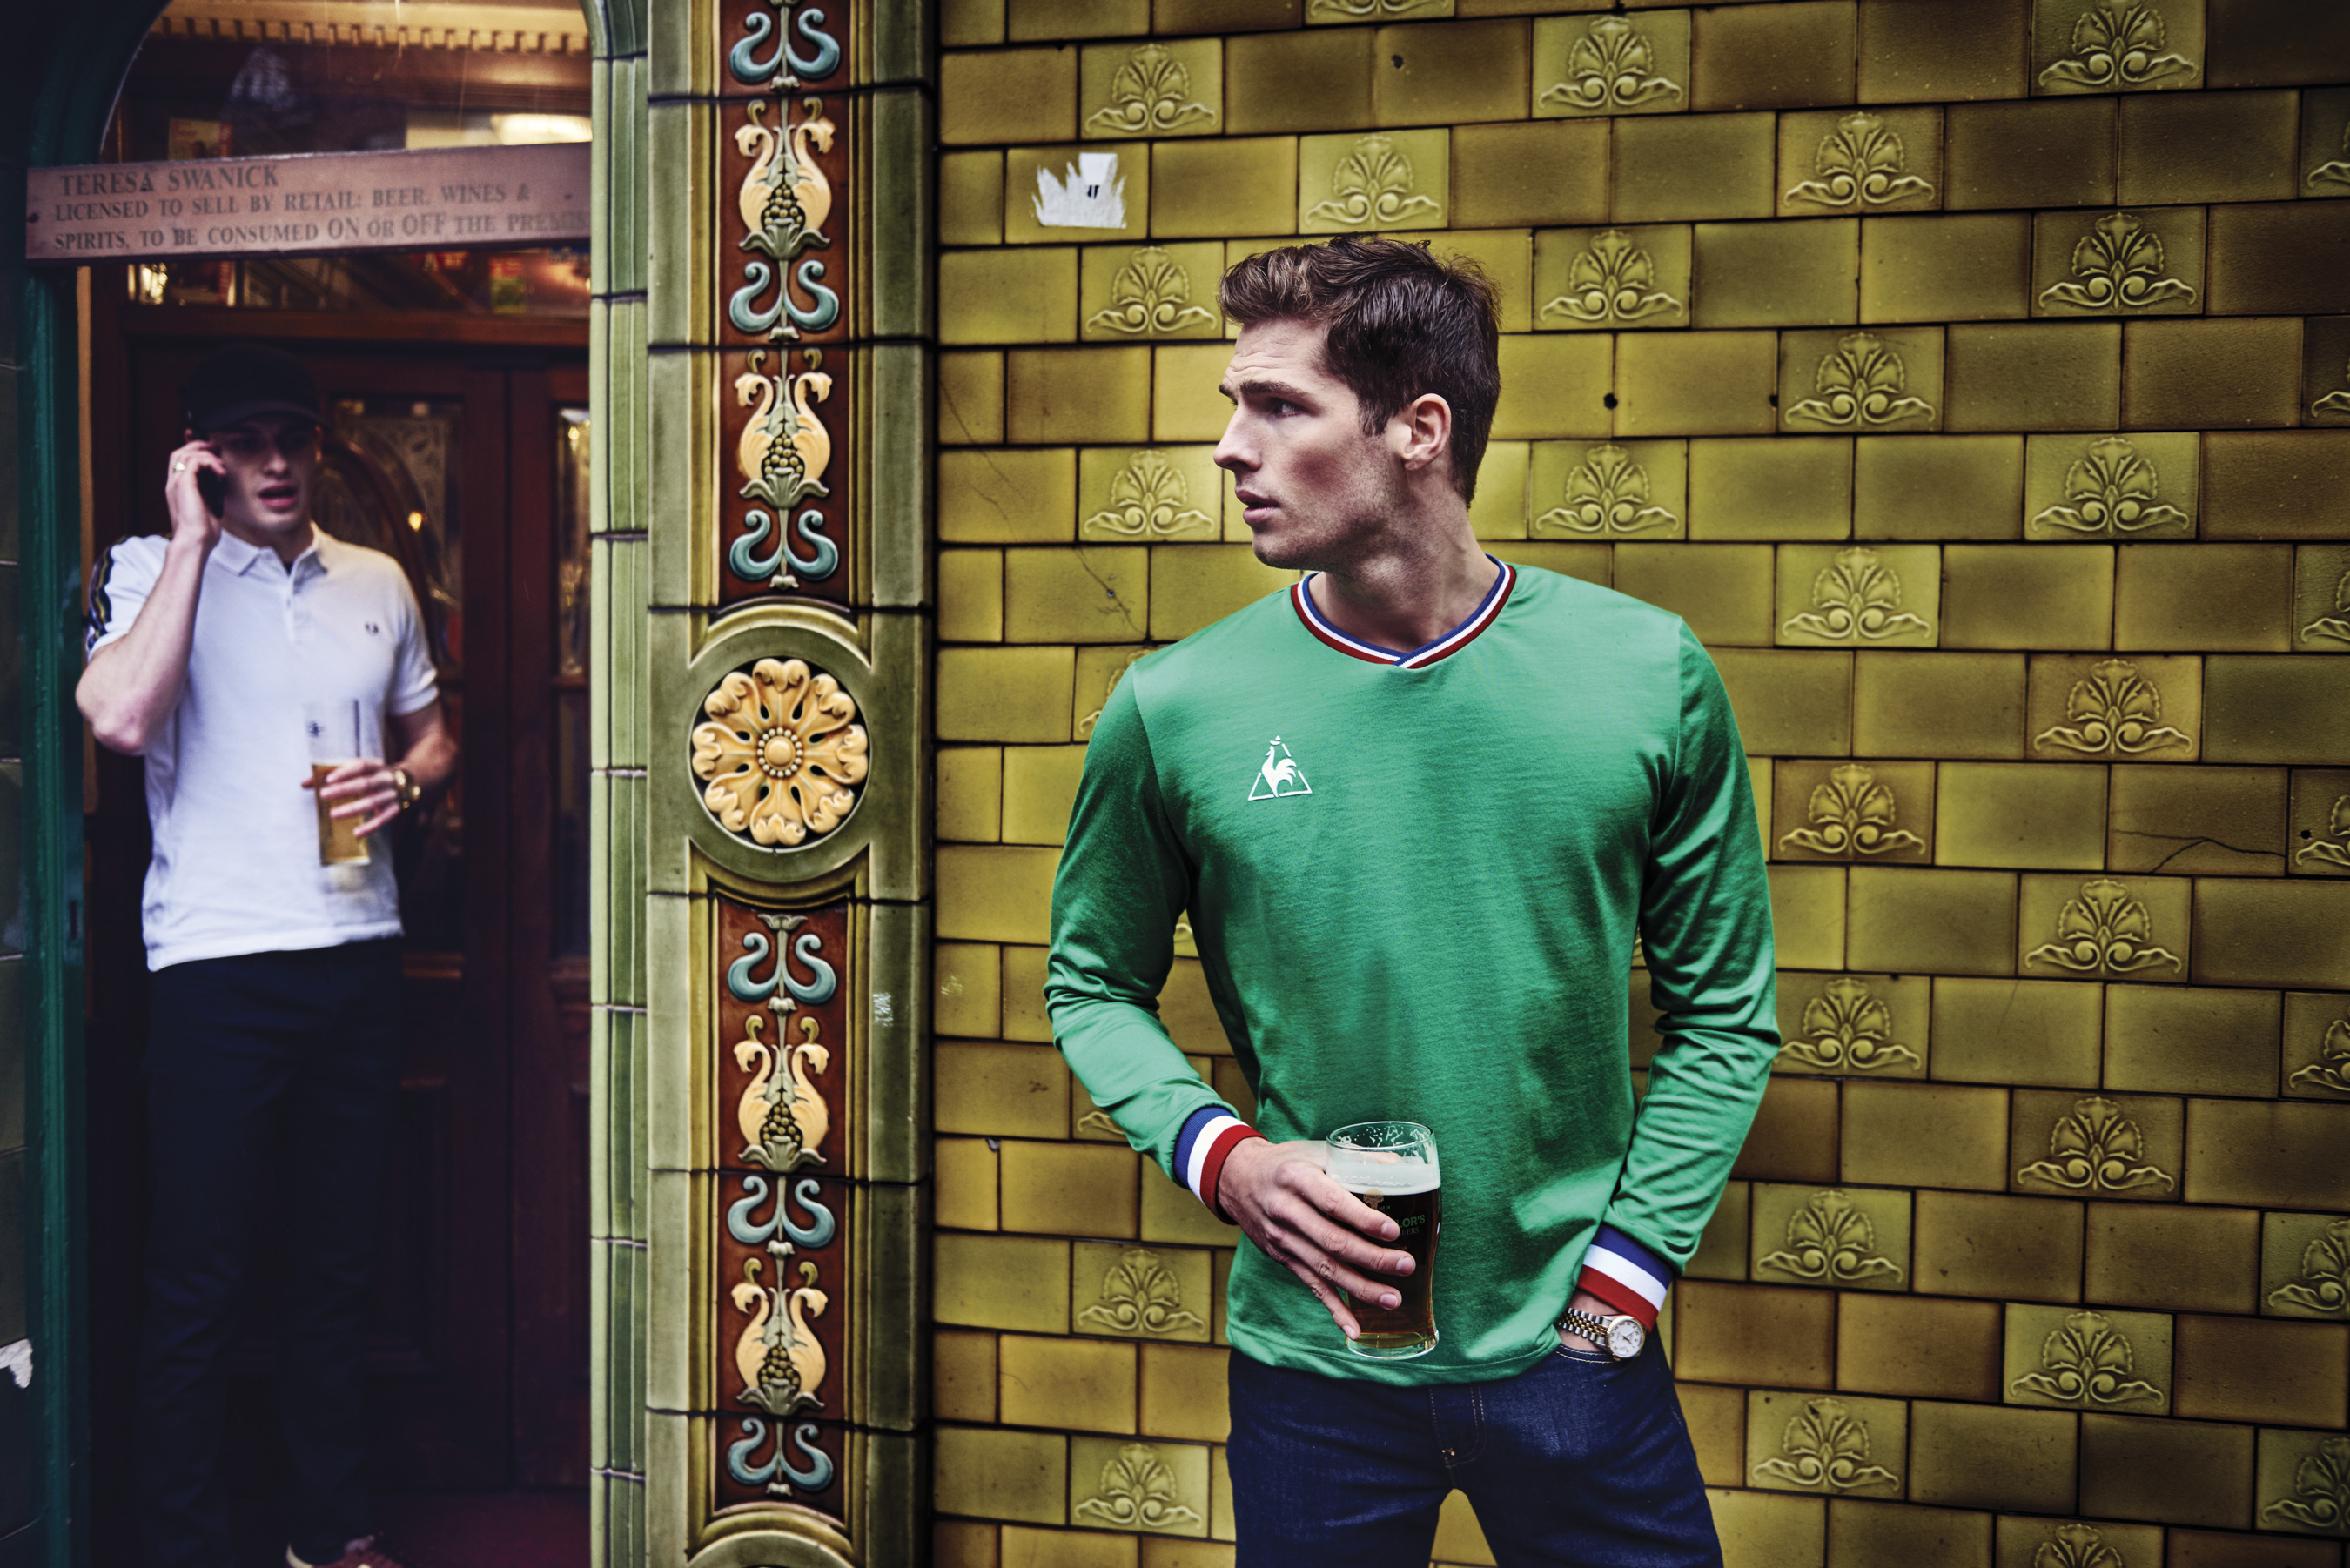 Matt-Stansfield-Photographer-editorial-soccer-bible-fashion-lifestyle-away-days-488